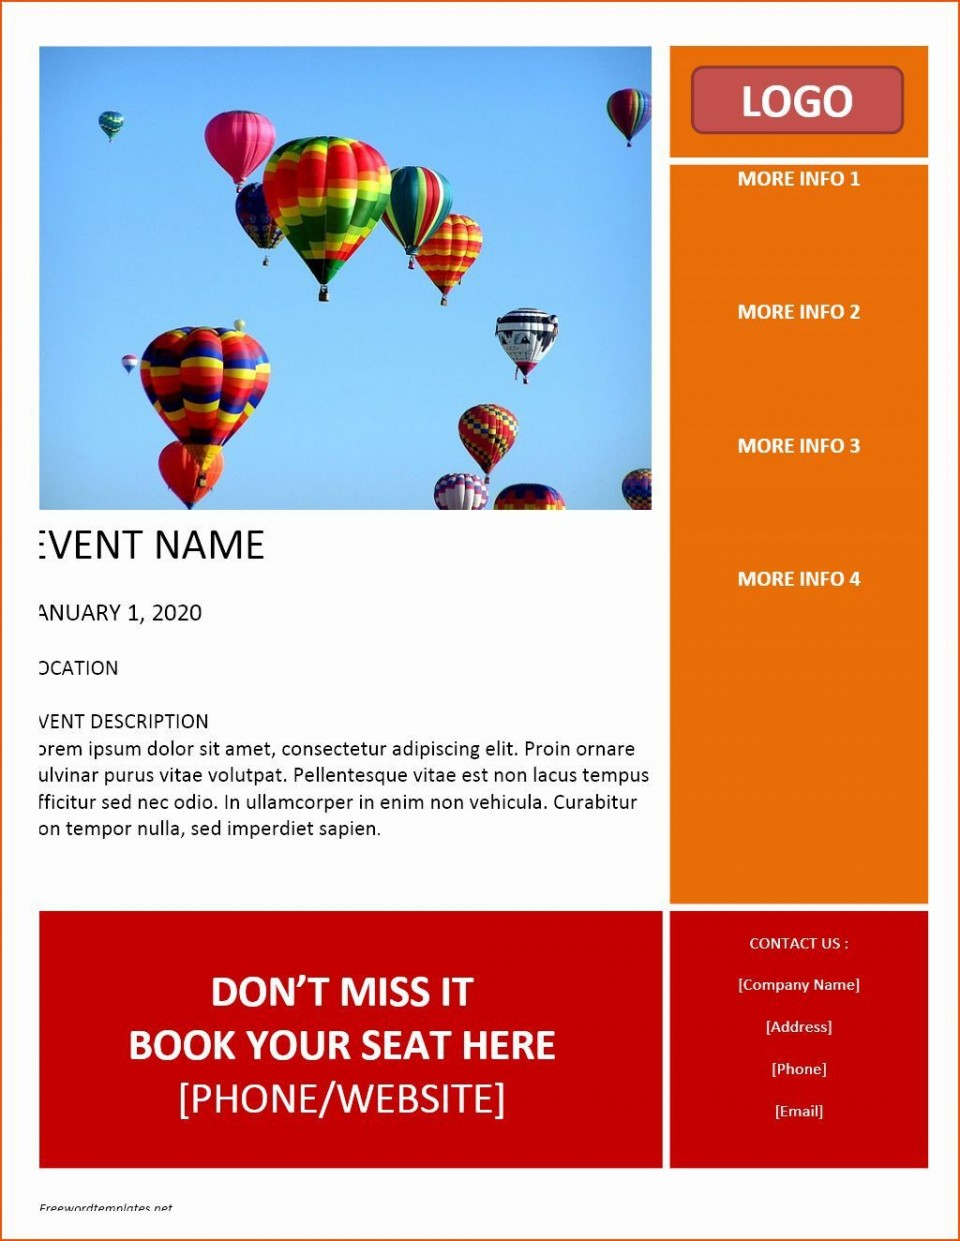 004 Impressive Free Flyer Template Word Image  Document Blank Download960